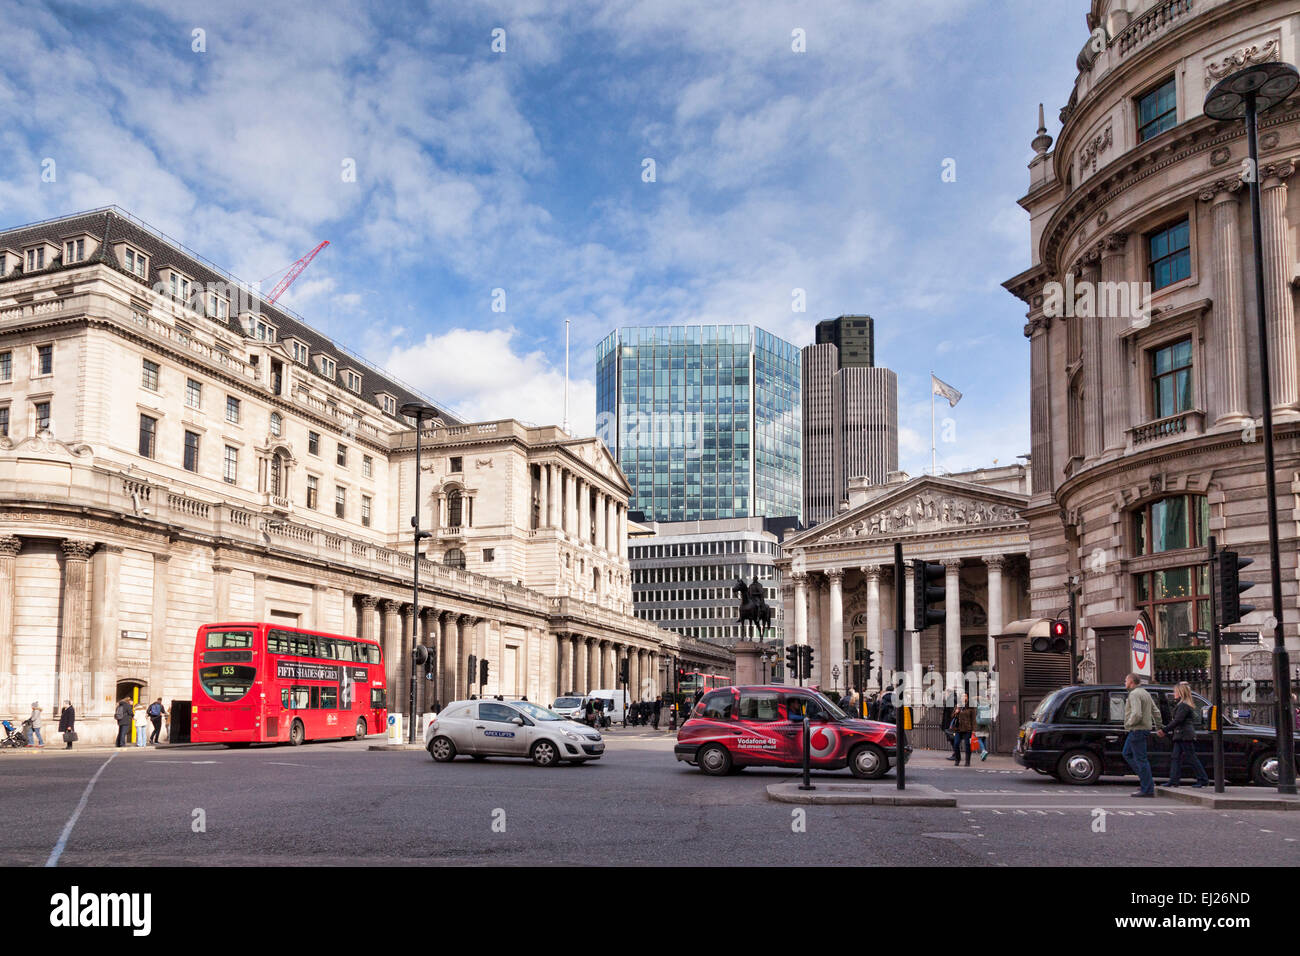 A street scene in Threadneedle Street, London, England, with the Bank of England on the left. The glass building - Stock Image